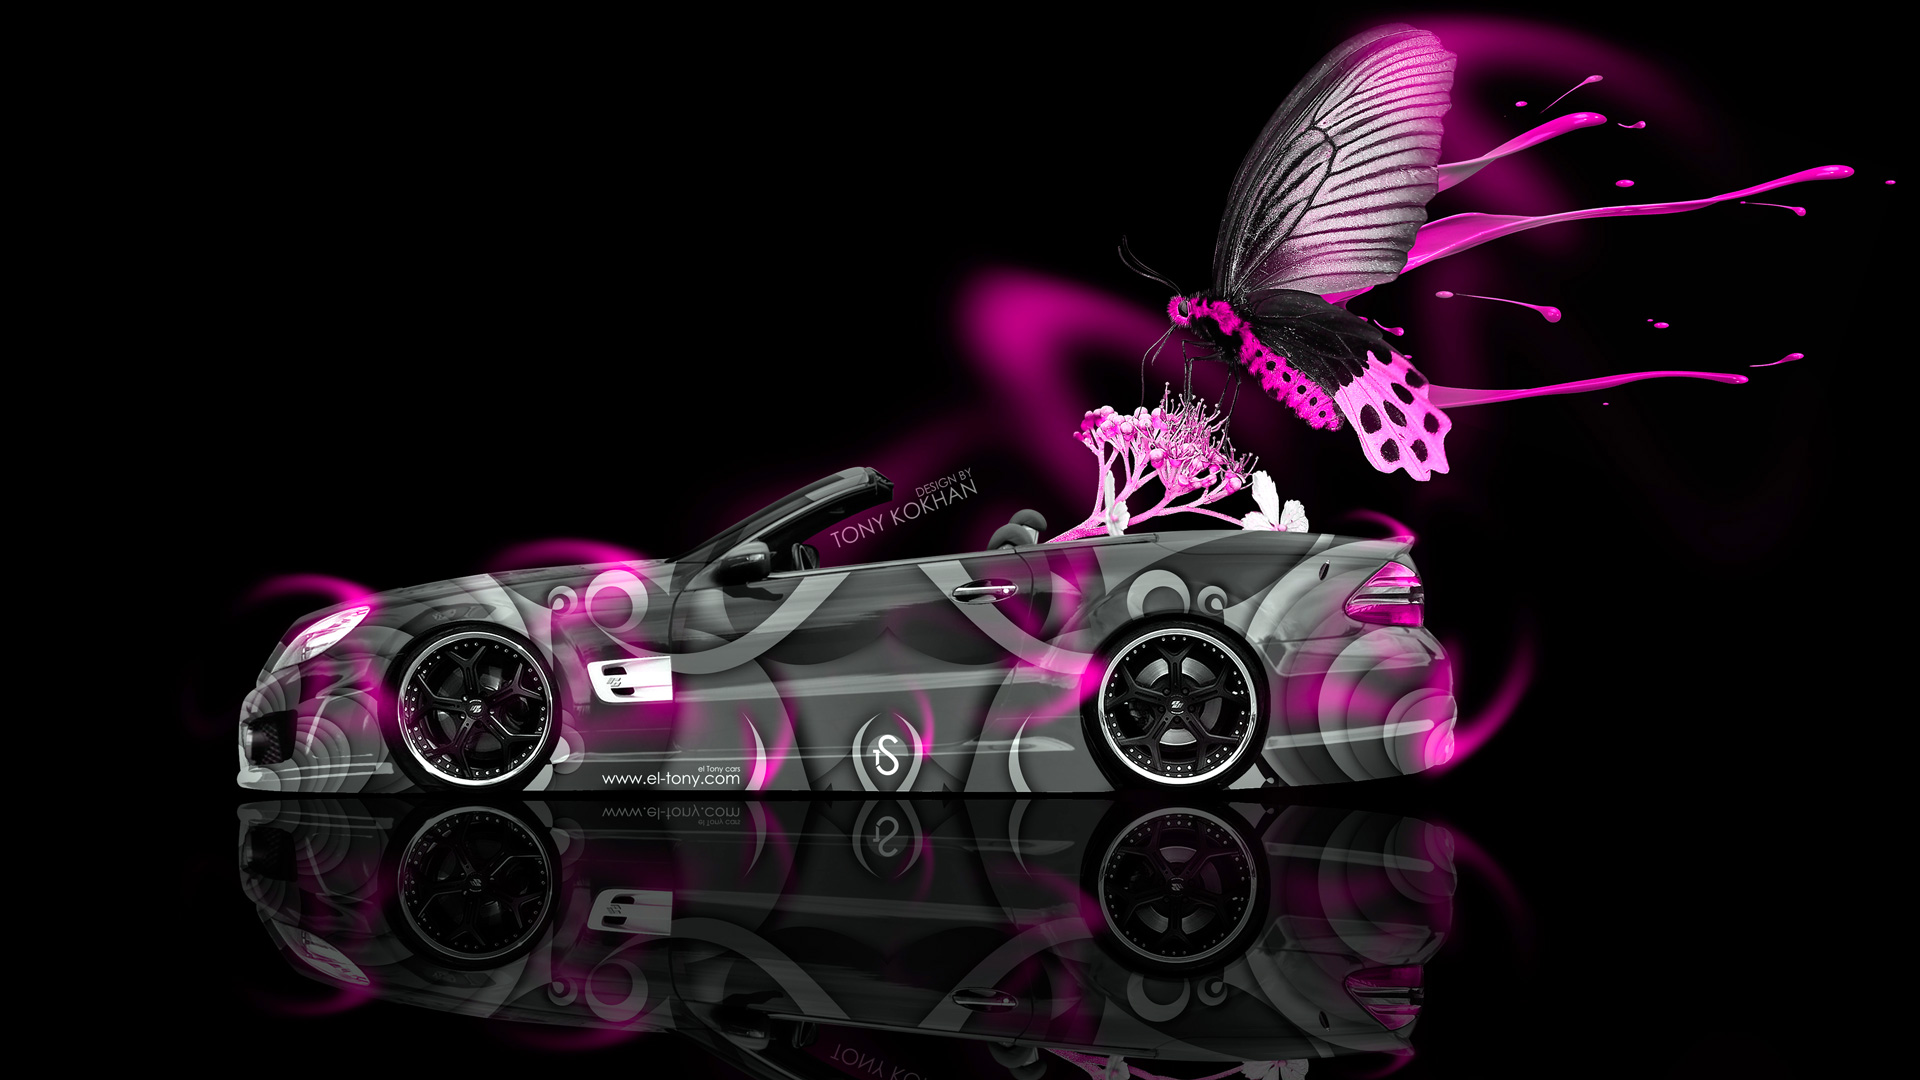 Hd Wallpapers Cars Logo Mercedes Benz Sl Fantasy Live Colors Butterfly Car 2014